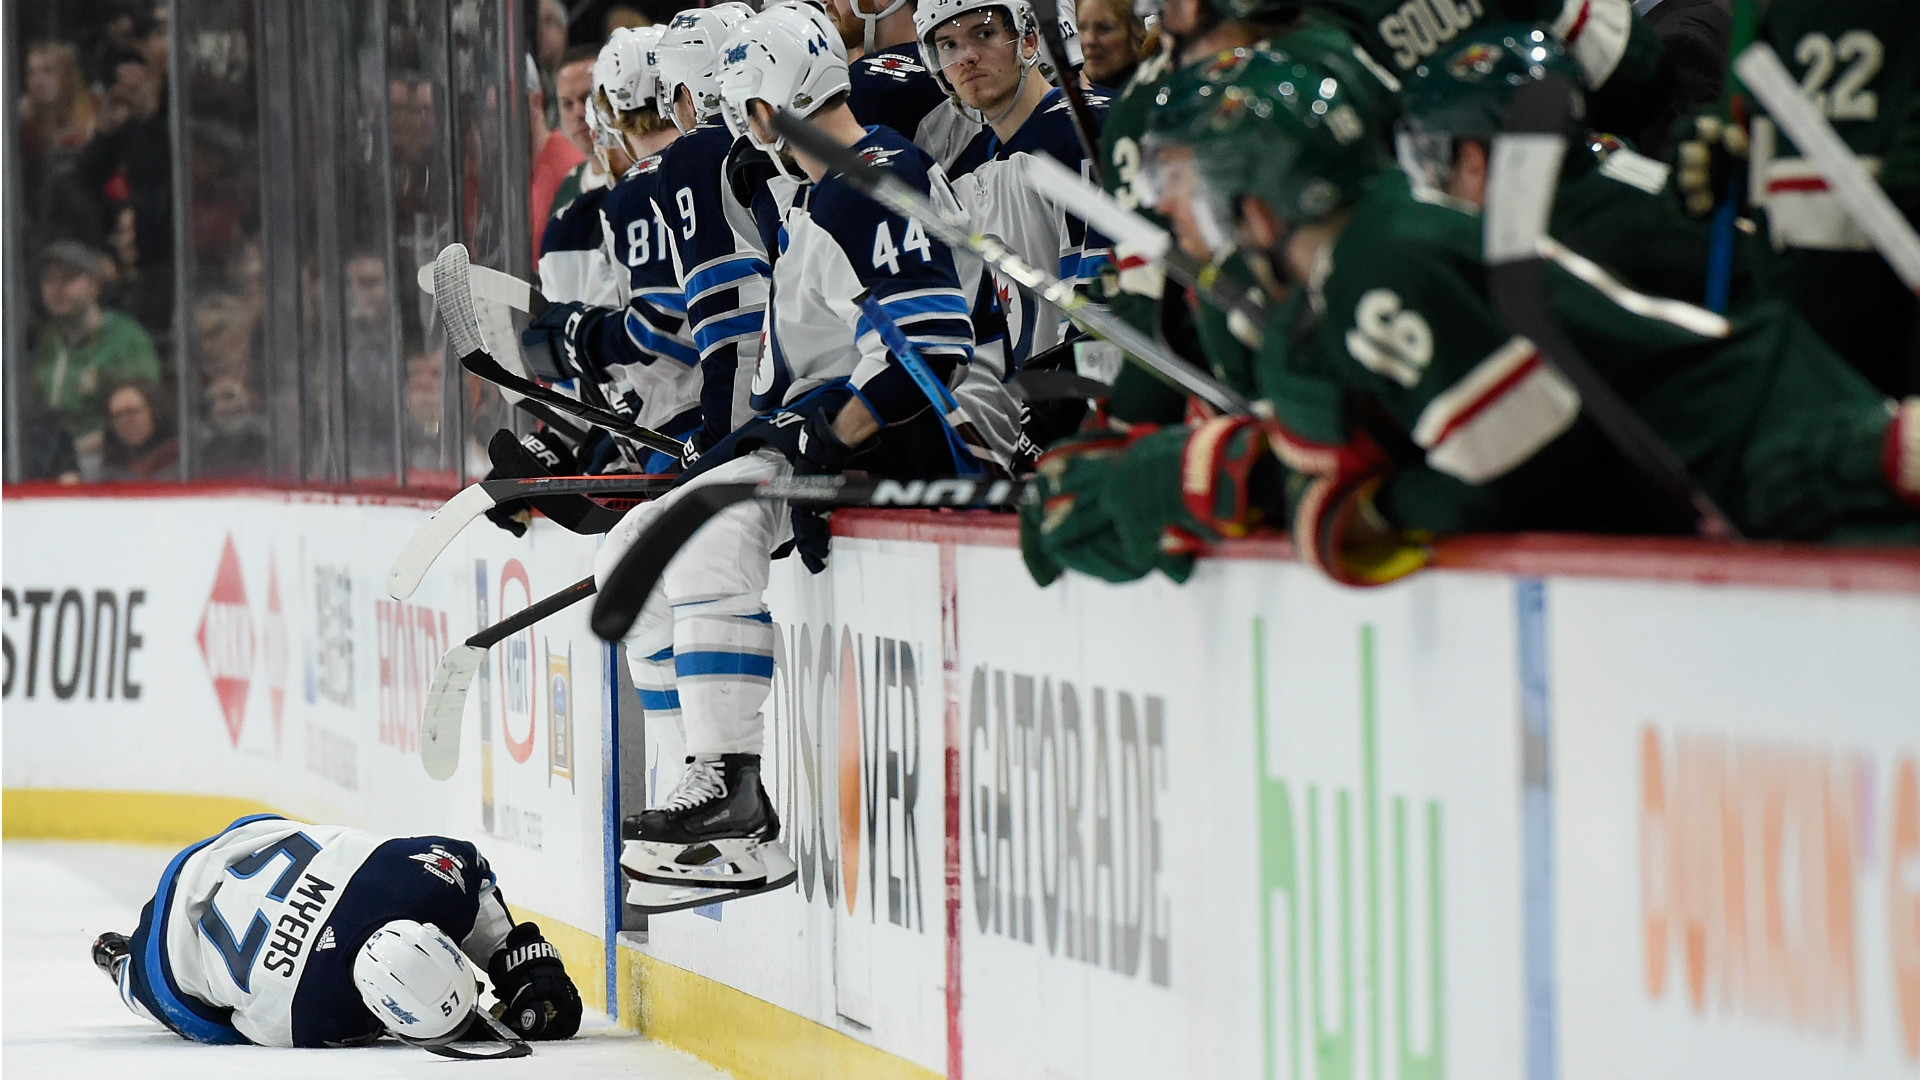 Wild vs. Jets Game 4: Highlights, final score and more